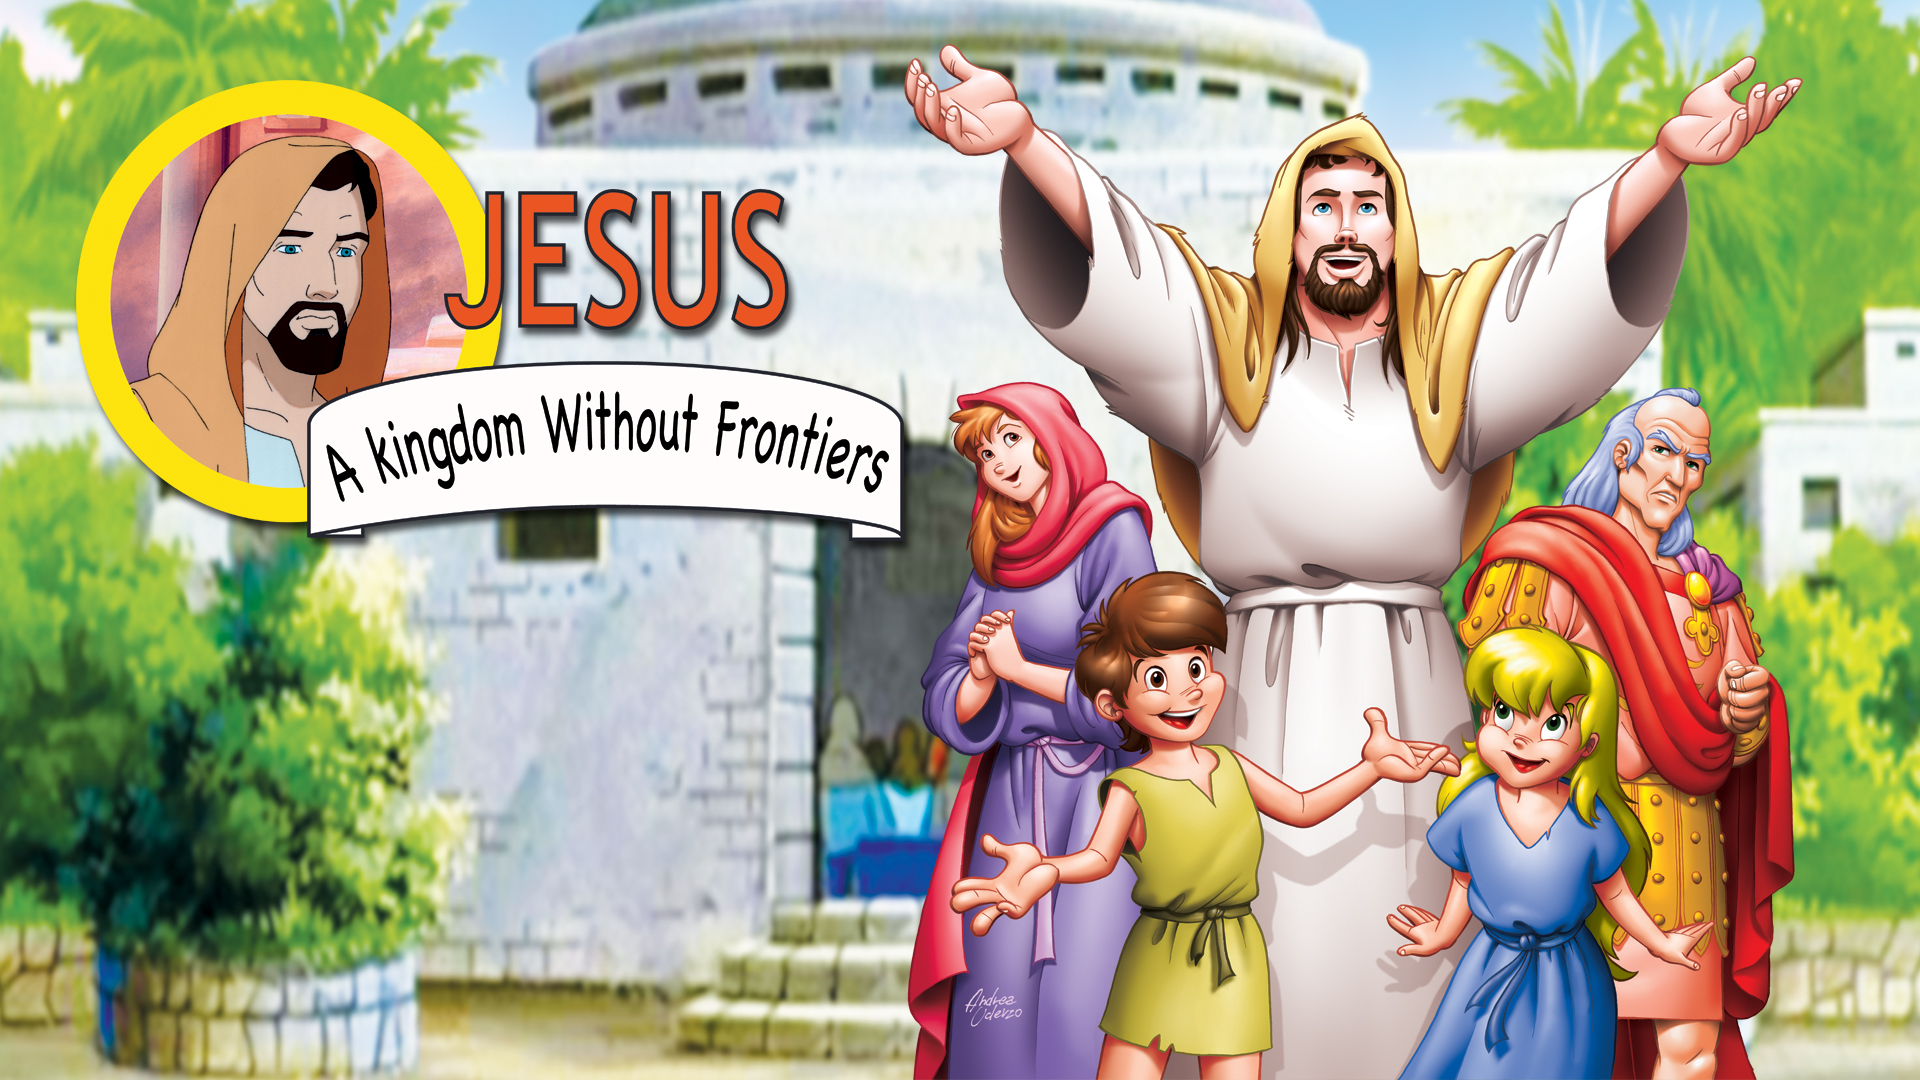 Jesus: A Kingdom Without Frontiers